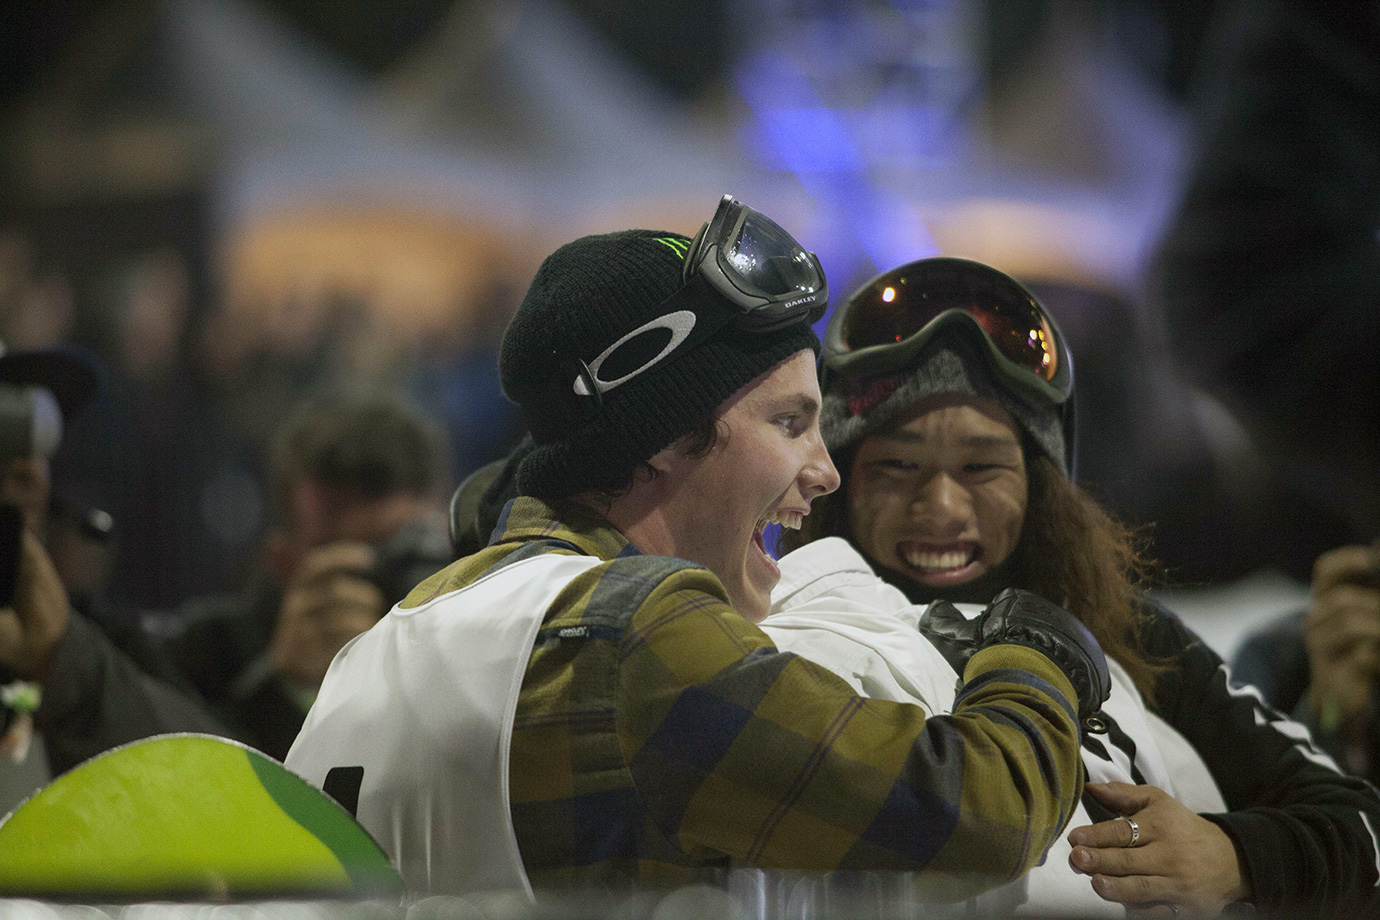 Thorgren and Kadono congratulate Mack after he reaches the bottom on his final run of the contest. The three riders made up the podium of Air+Style L.A.; Tonteri finished fourth.